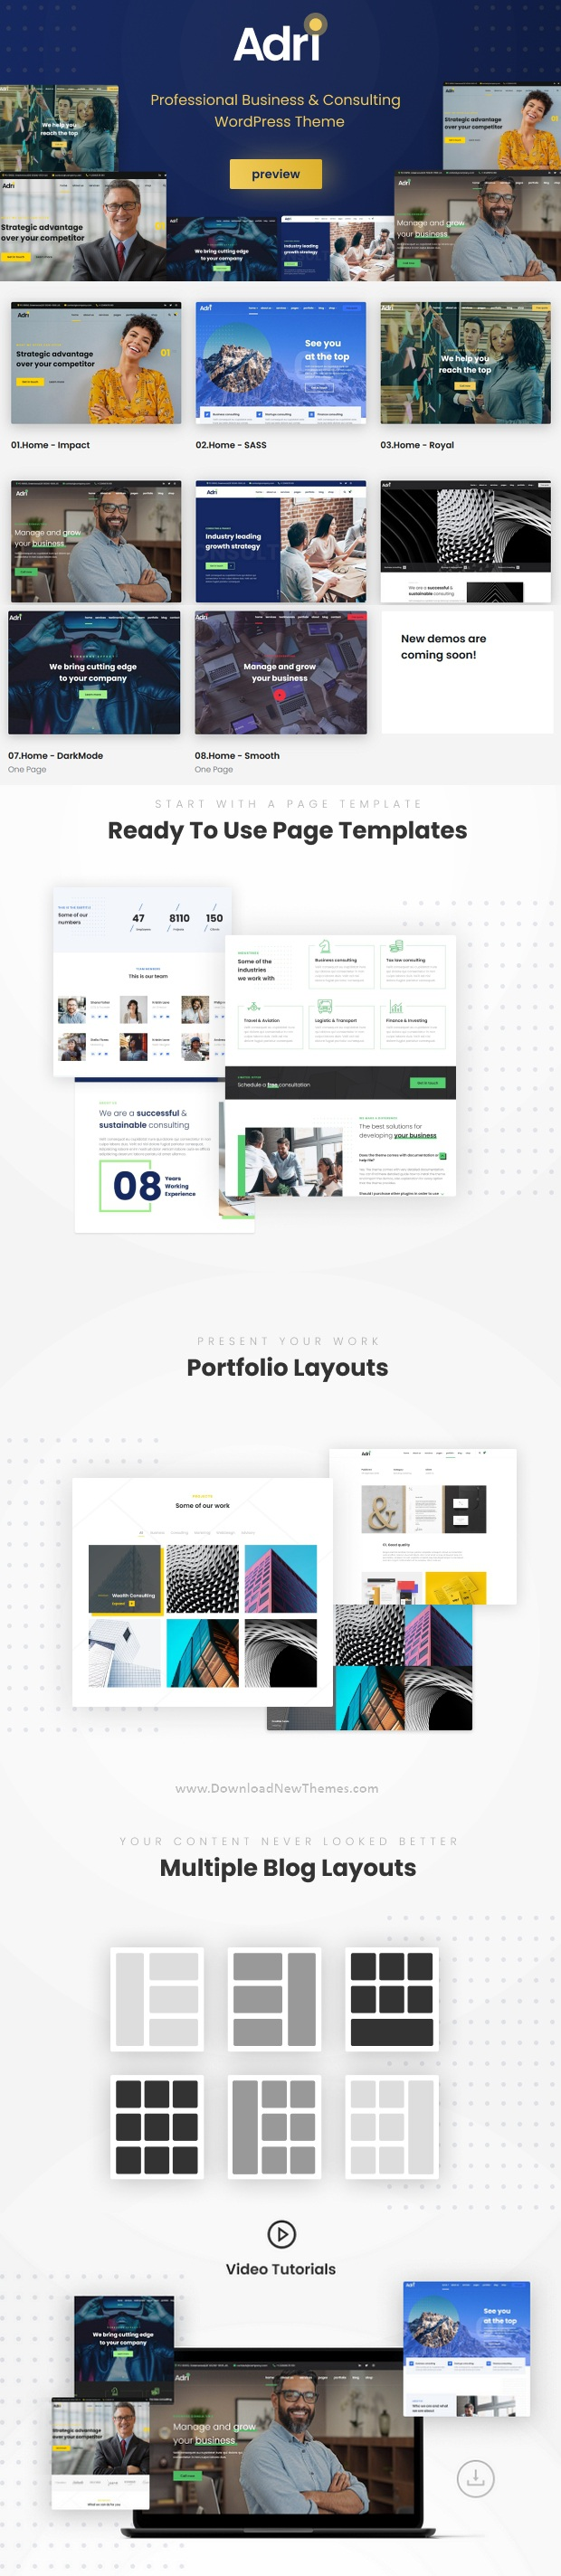 Business and Consulting WordPress Theme